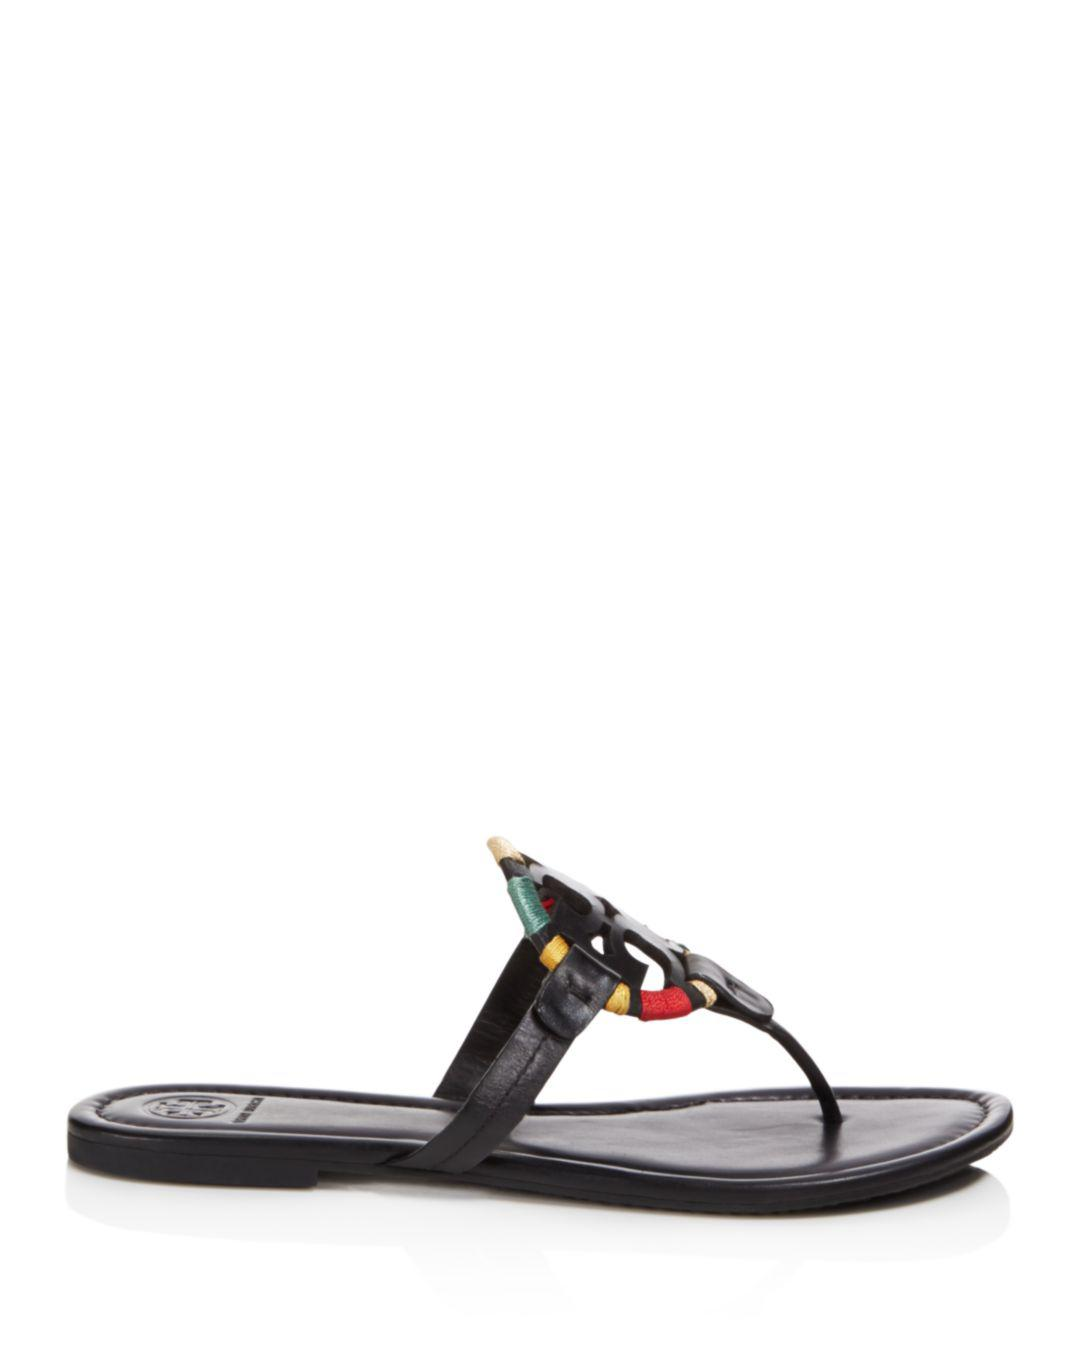 3e2049625bffb Lyst - Tory Burch Women s Miller Leather Sandals